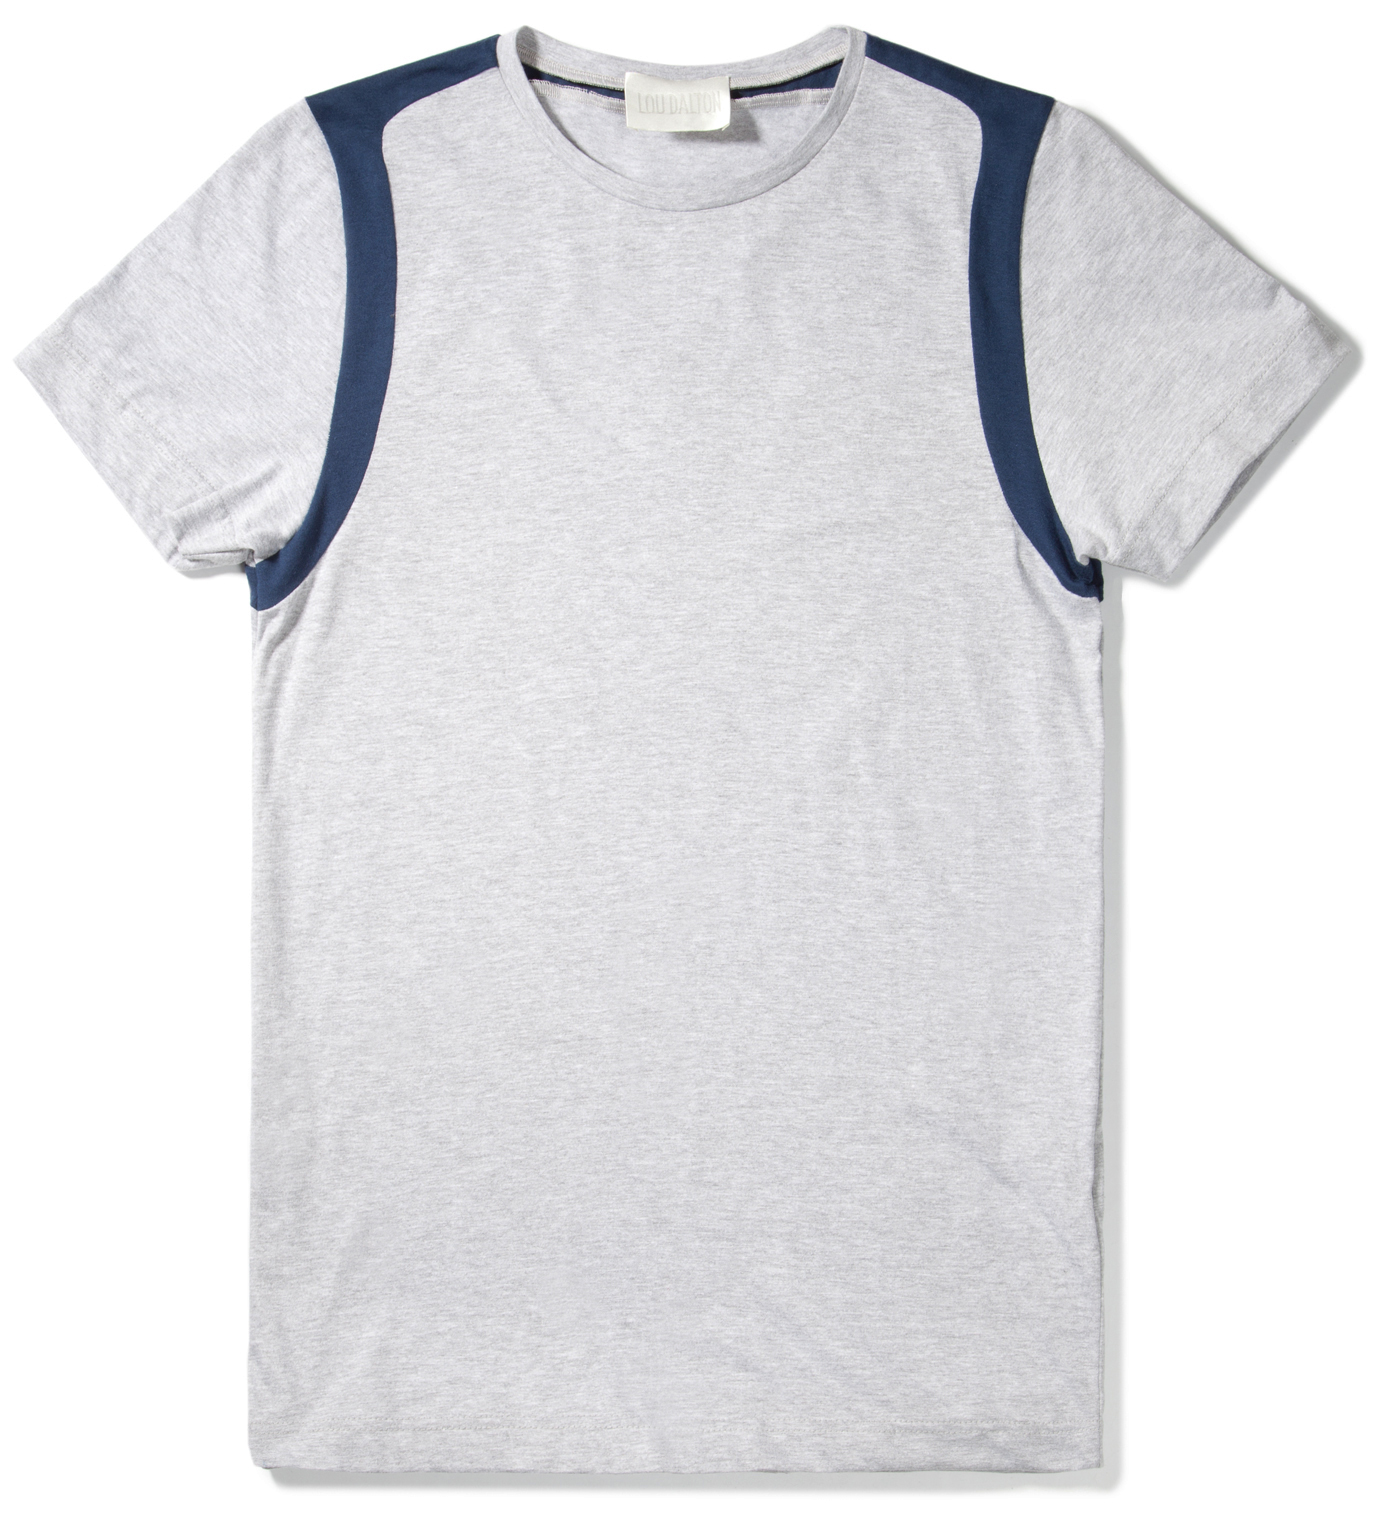 Lou Dalton Navy/Grey Marble Strap Shoulder T-Shirt